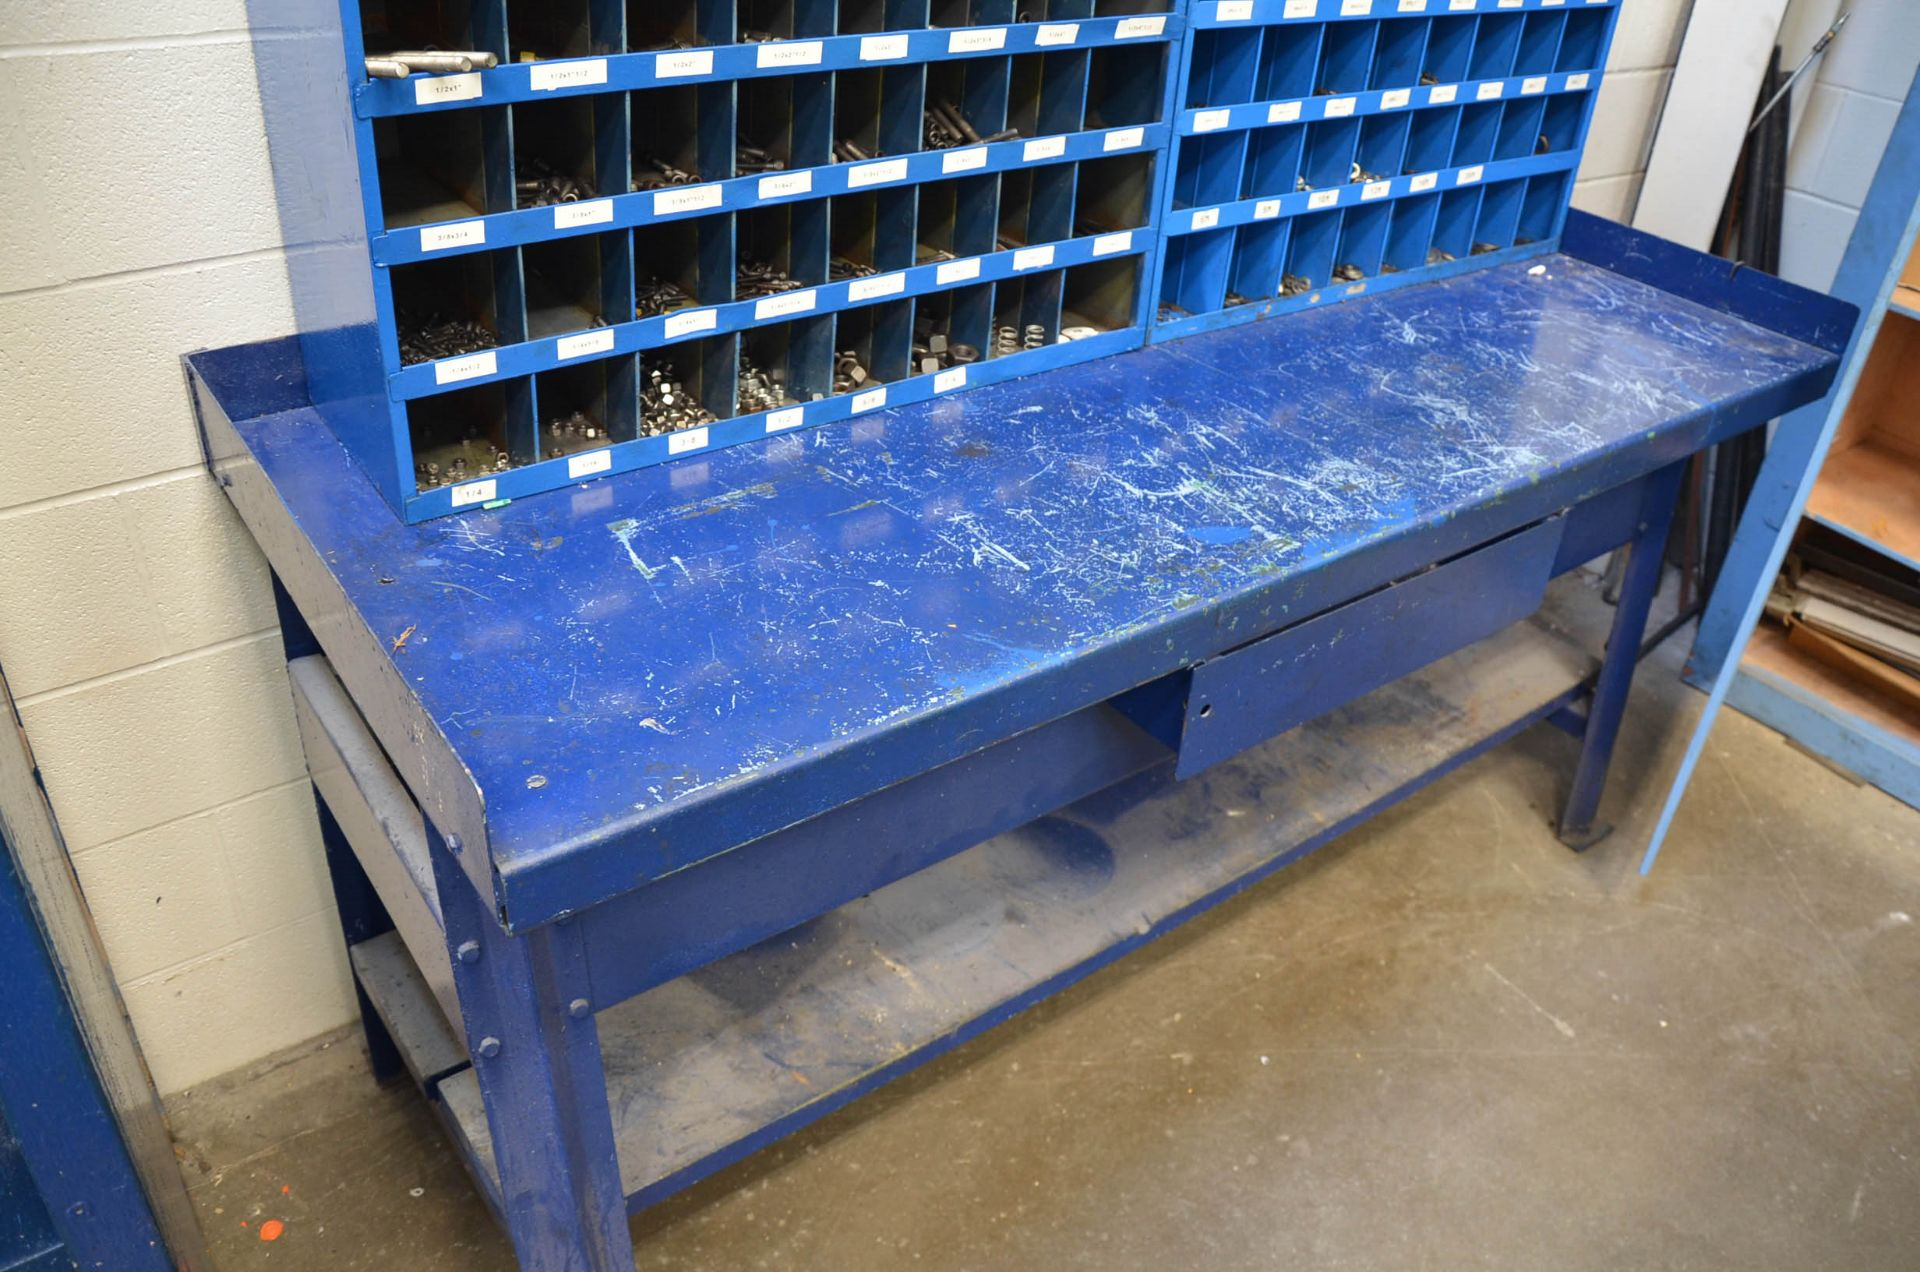 LOT/ FASTENAL PIGEON HOLE INDEX CABINETS WITH FASTENING HARDWARE AND STEEL WORK BENCH - Image 4 of 4